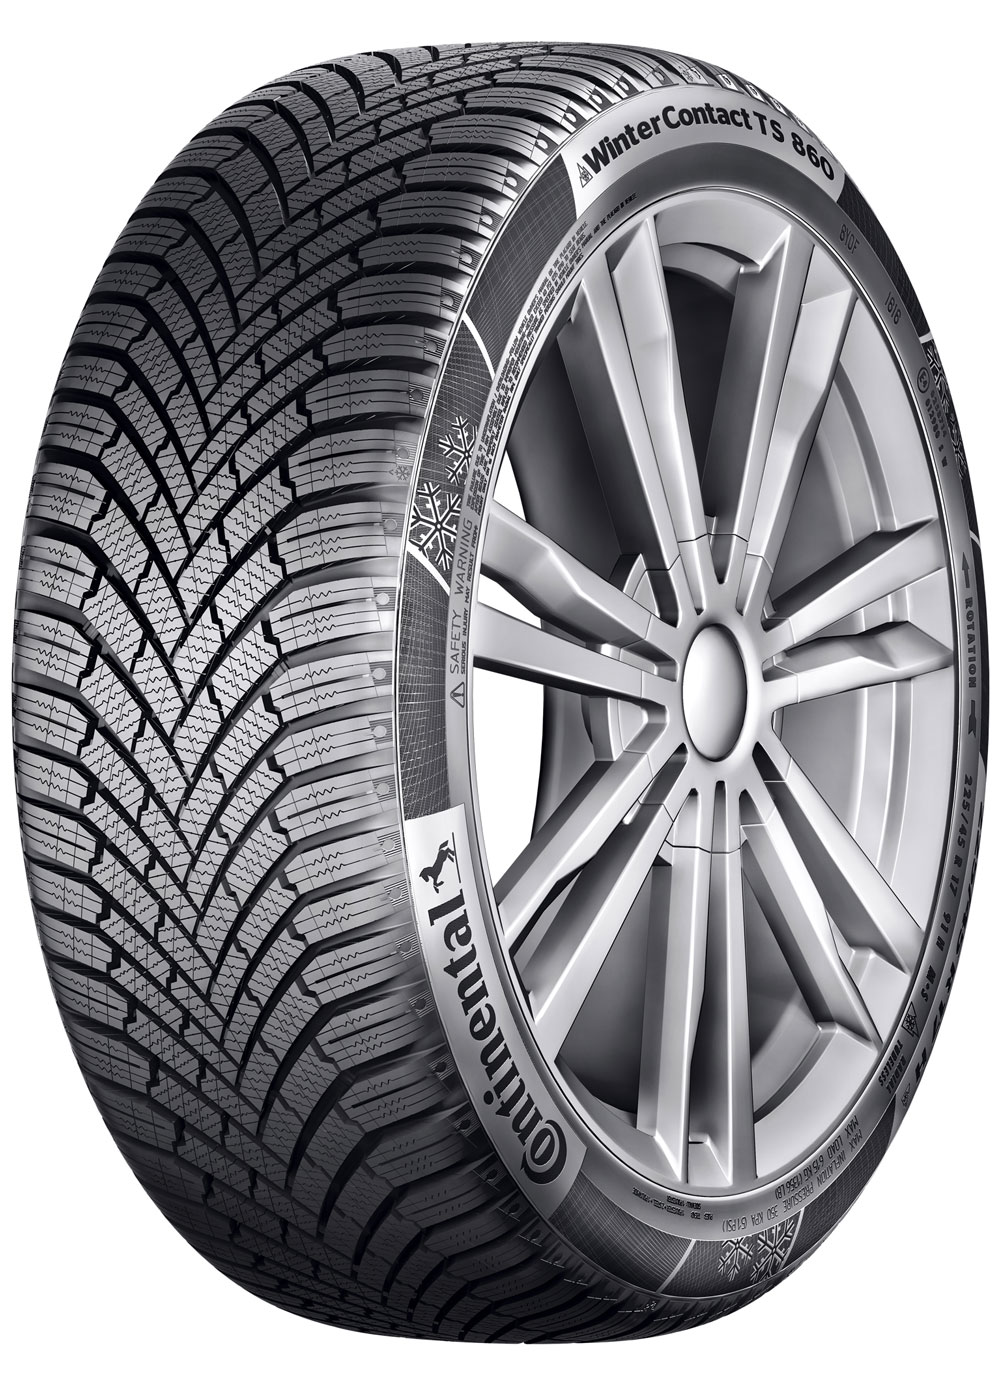 Gomme Nuove Continental 195/55 R16 87H WINTERCONTACT TS 860 M+S pneumatici nuovi Invernale